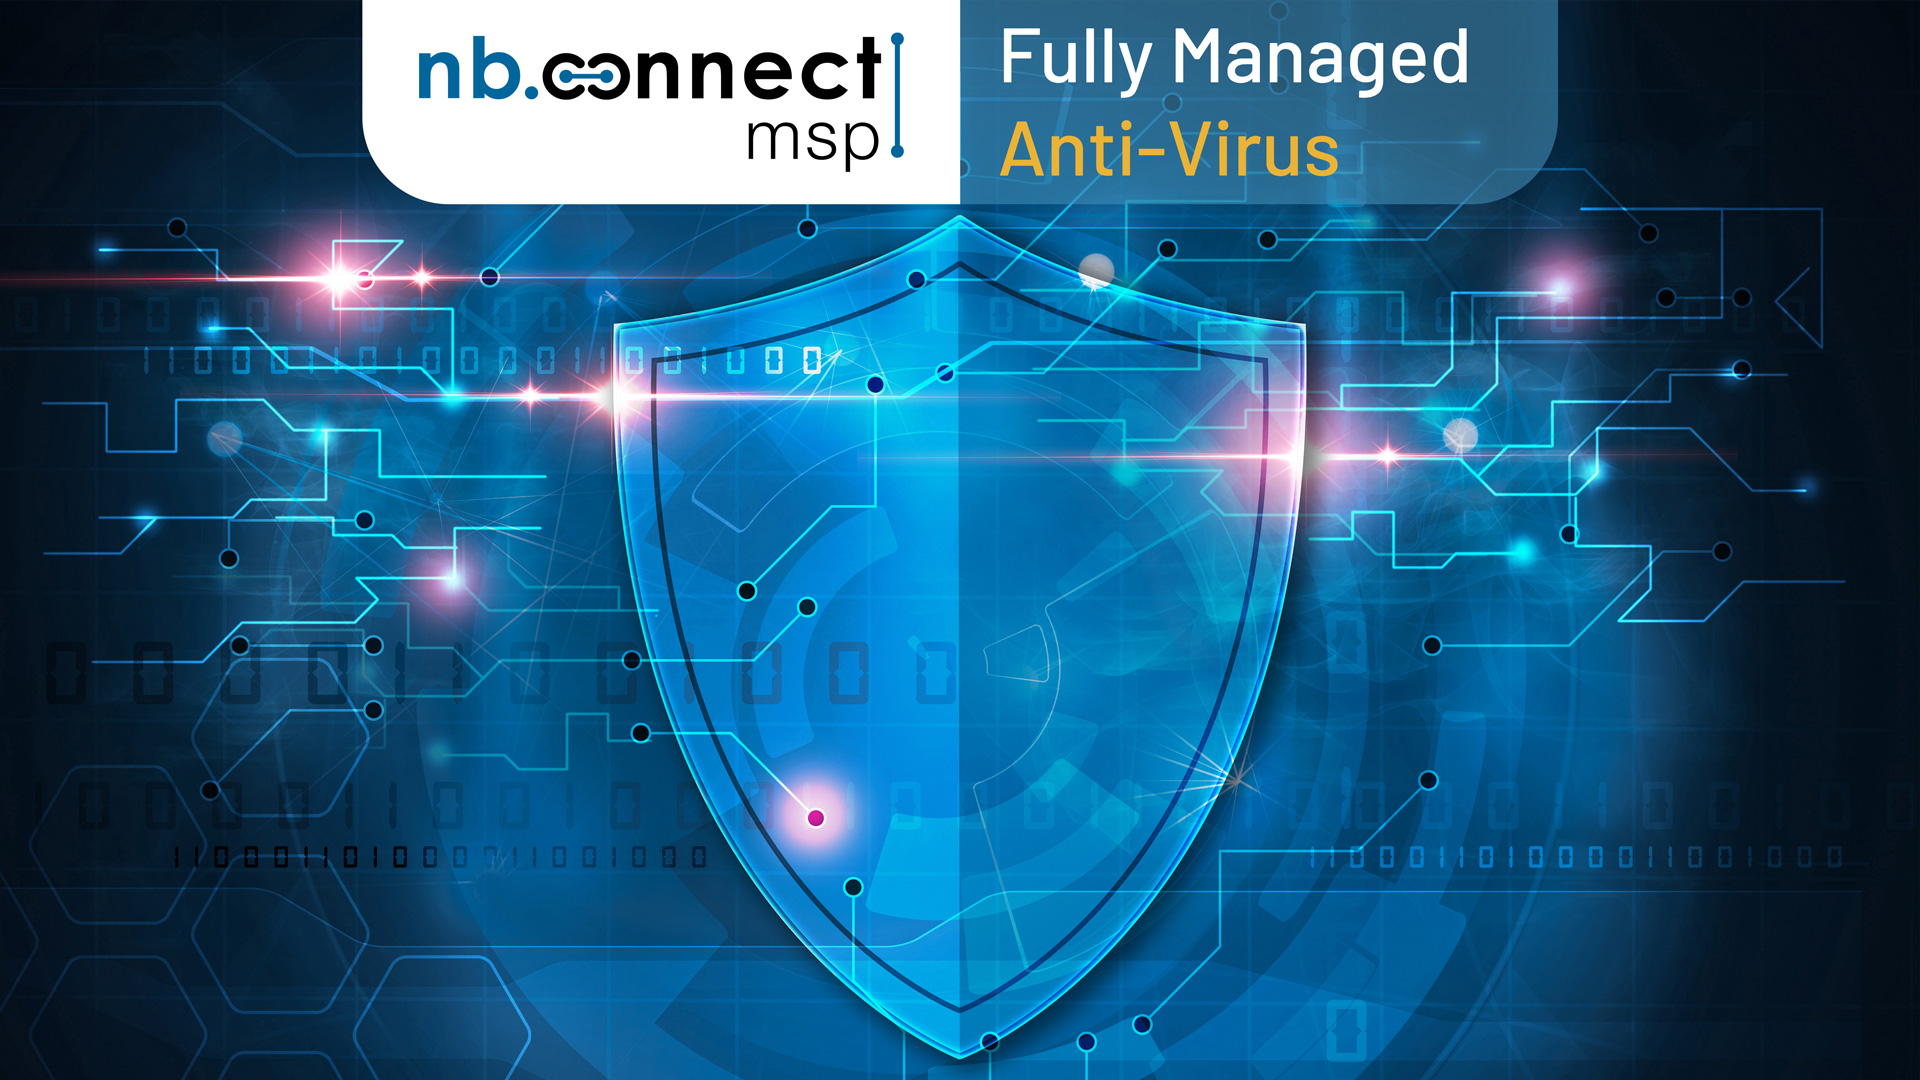 Fully Managed Anti-Virus